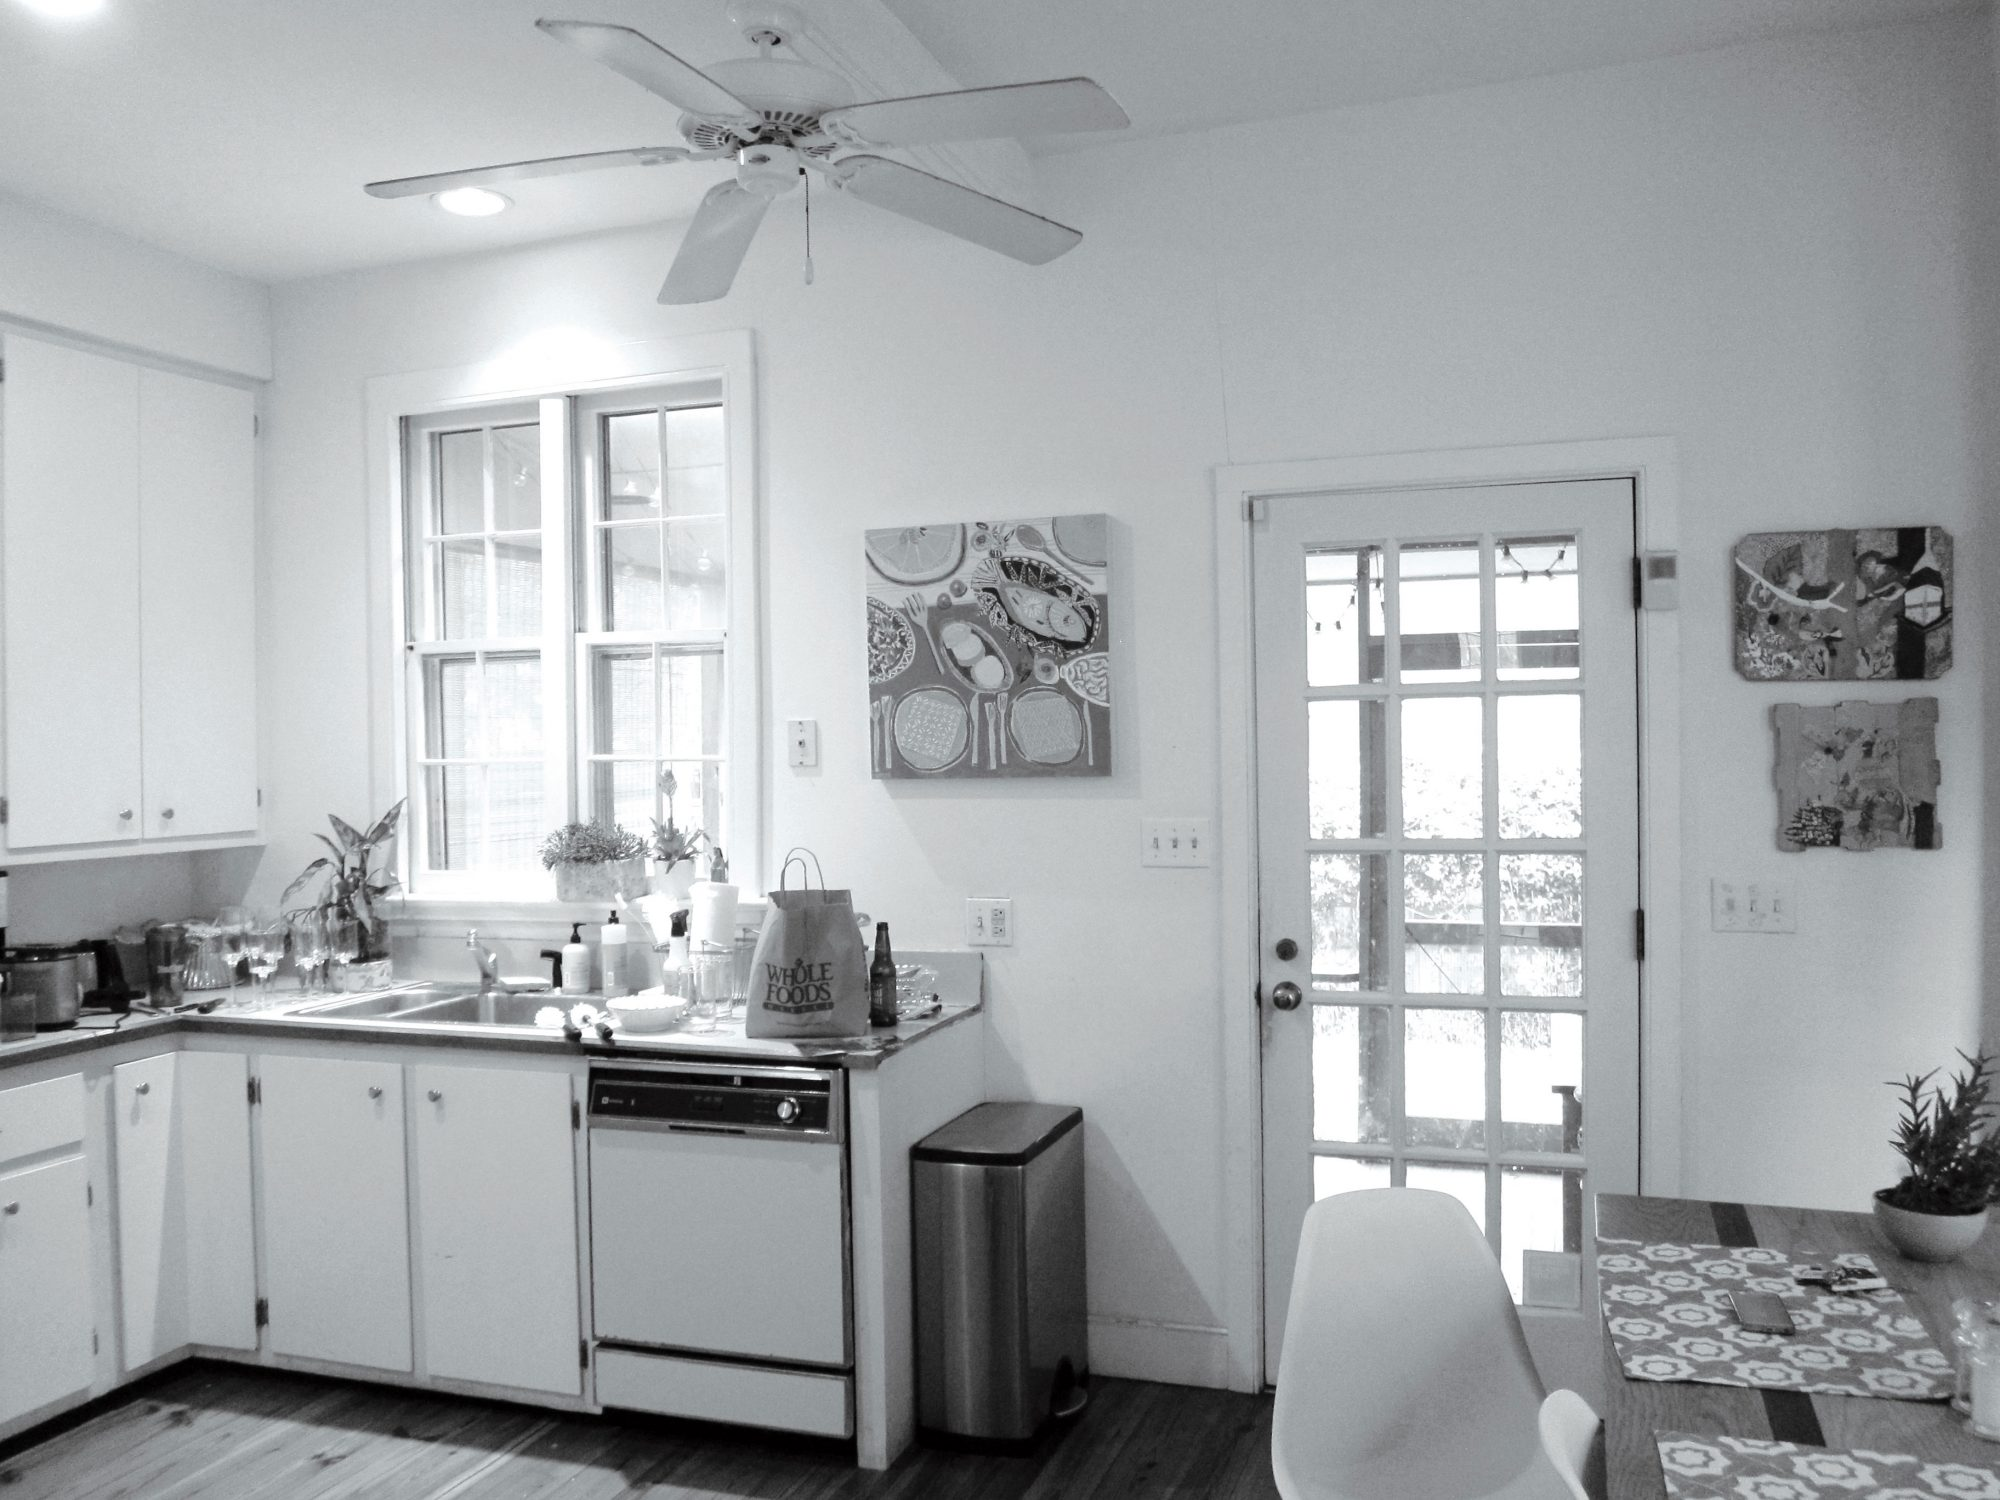 A Charleston Single House: The Kitchen Before